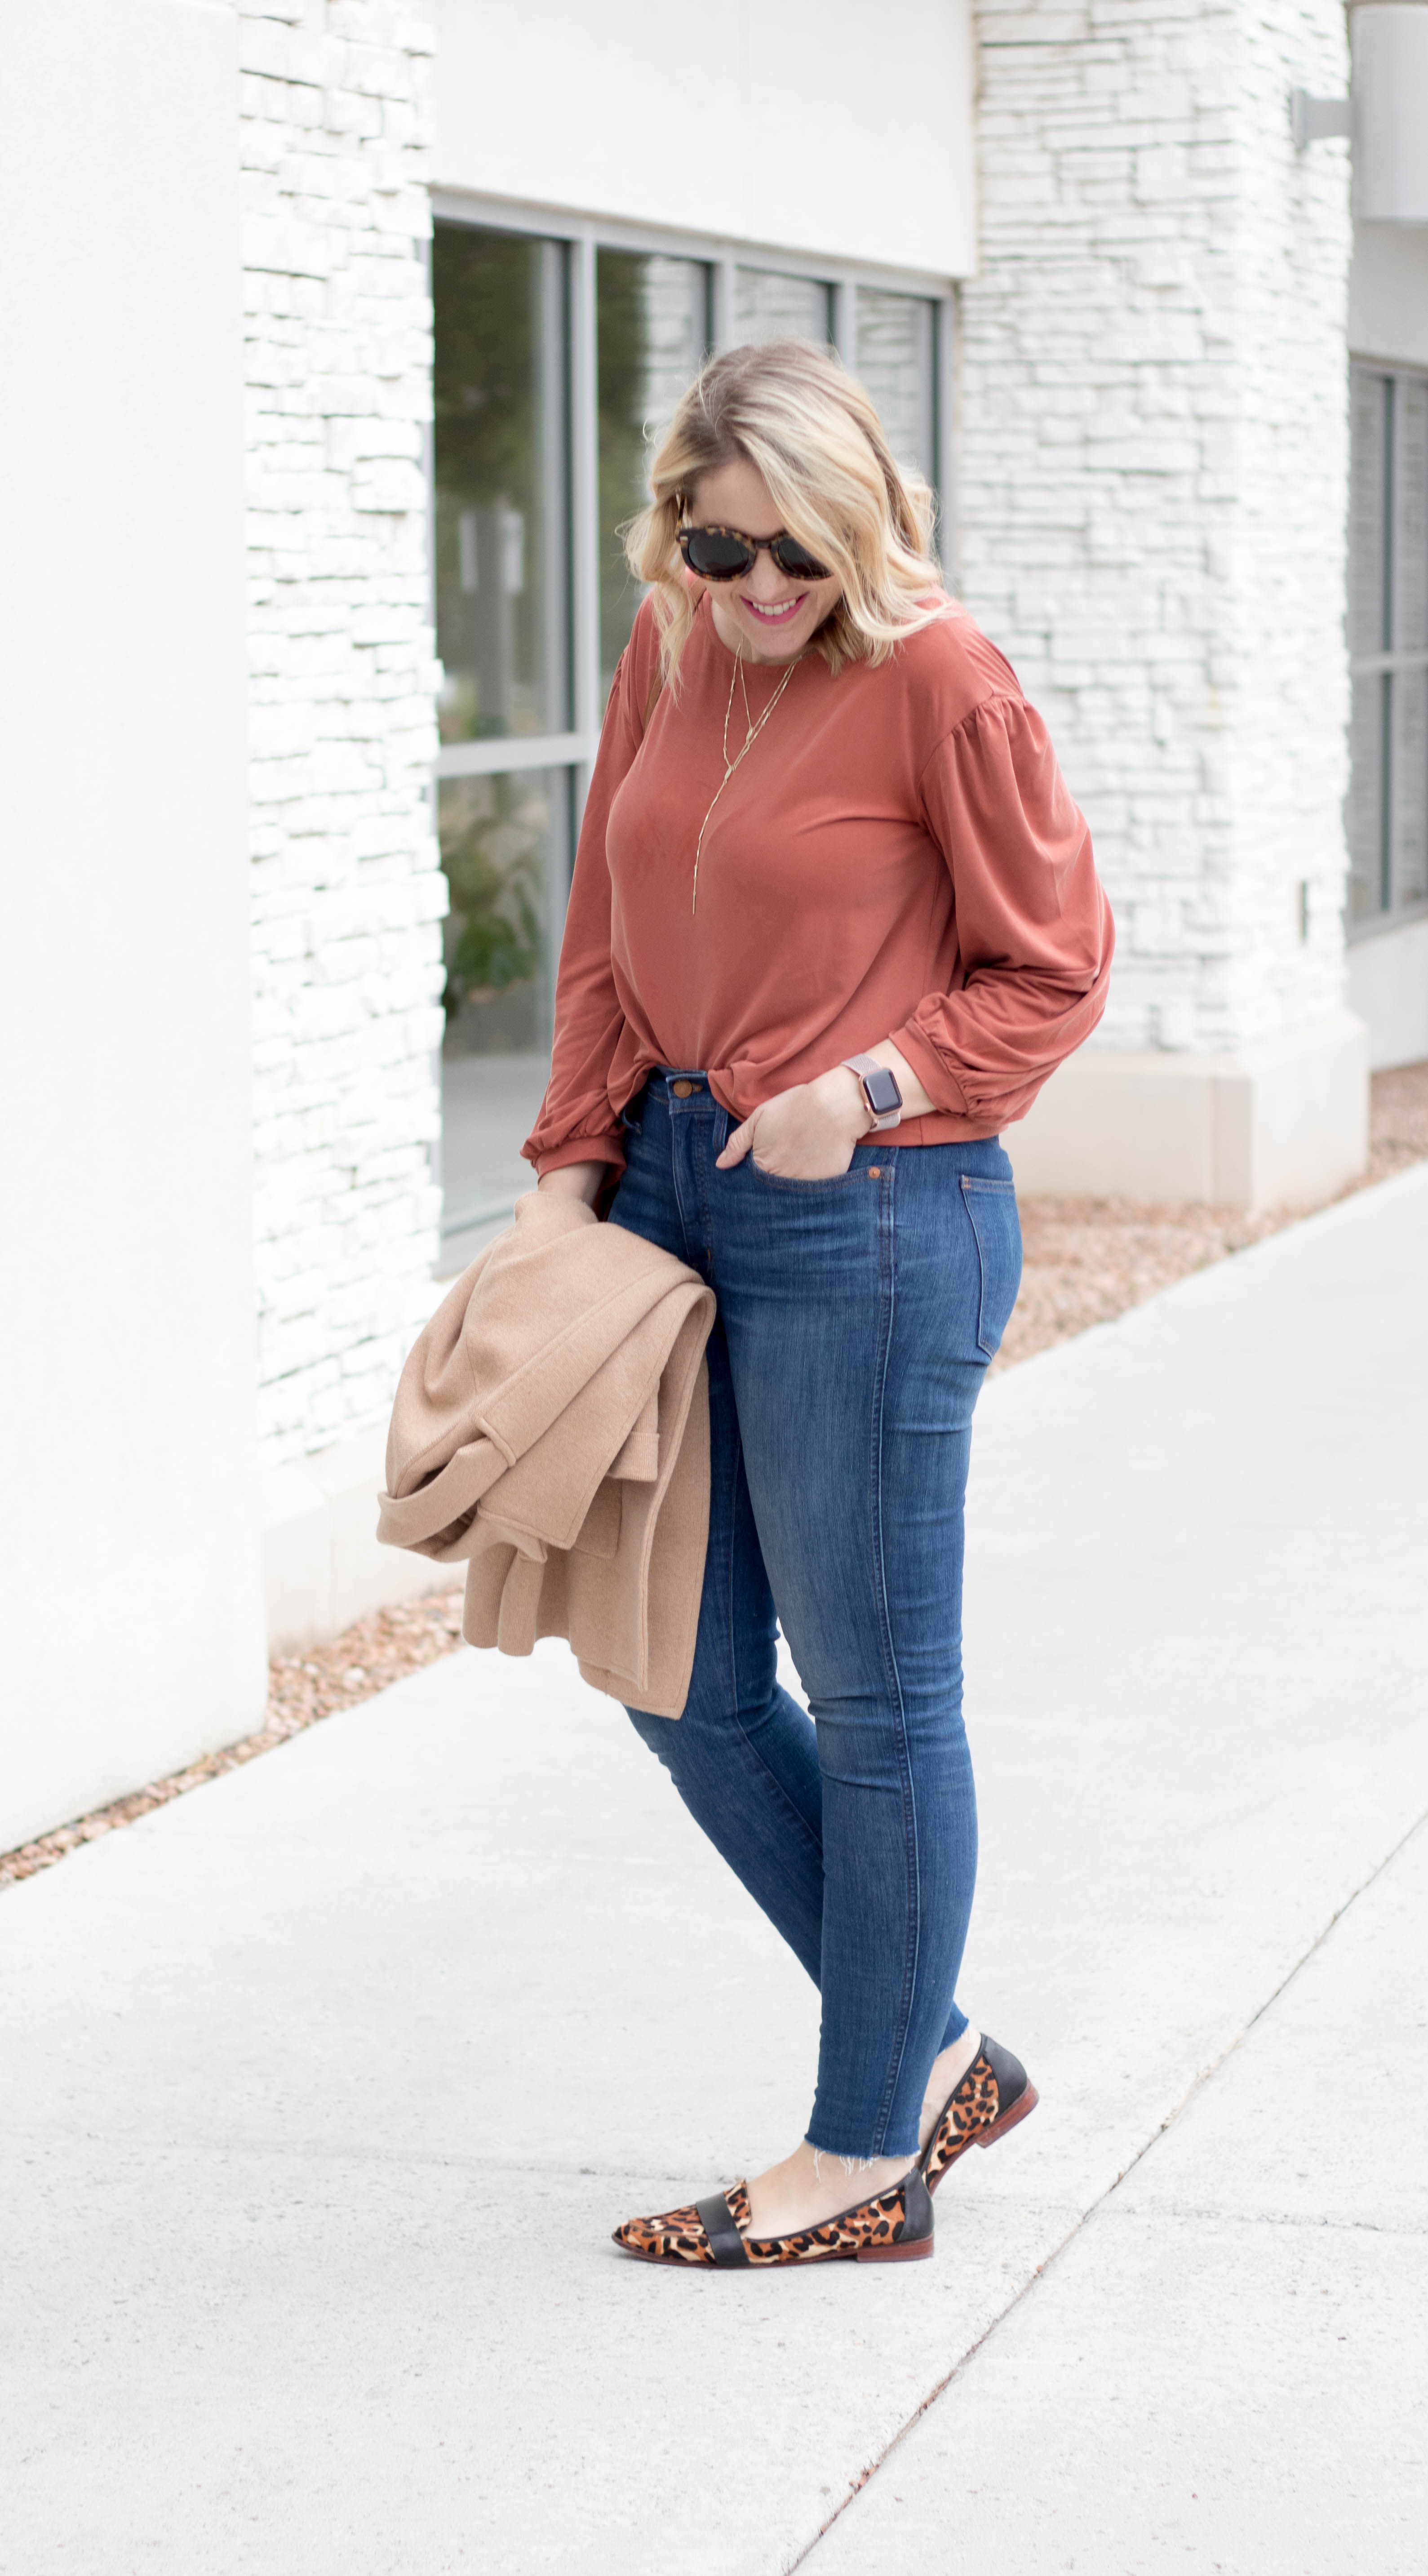 casual fall outfit for tall girls #fallstyle #tallfashion #madewelloutfit